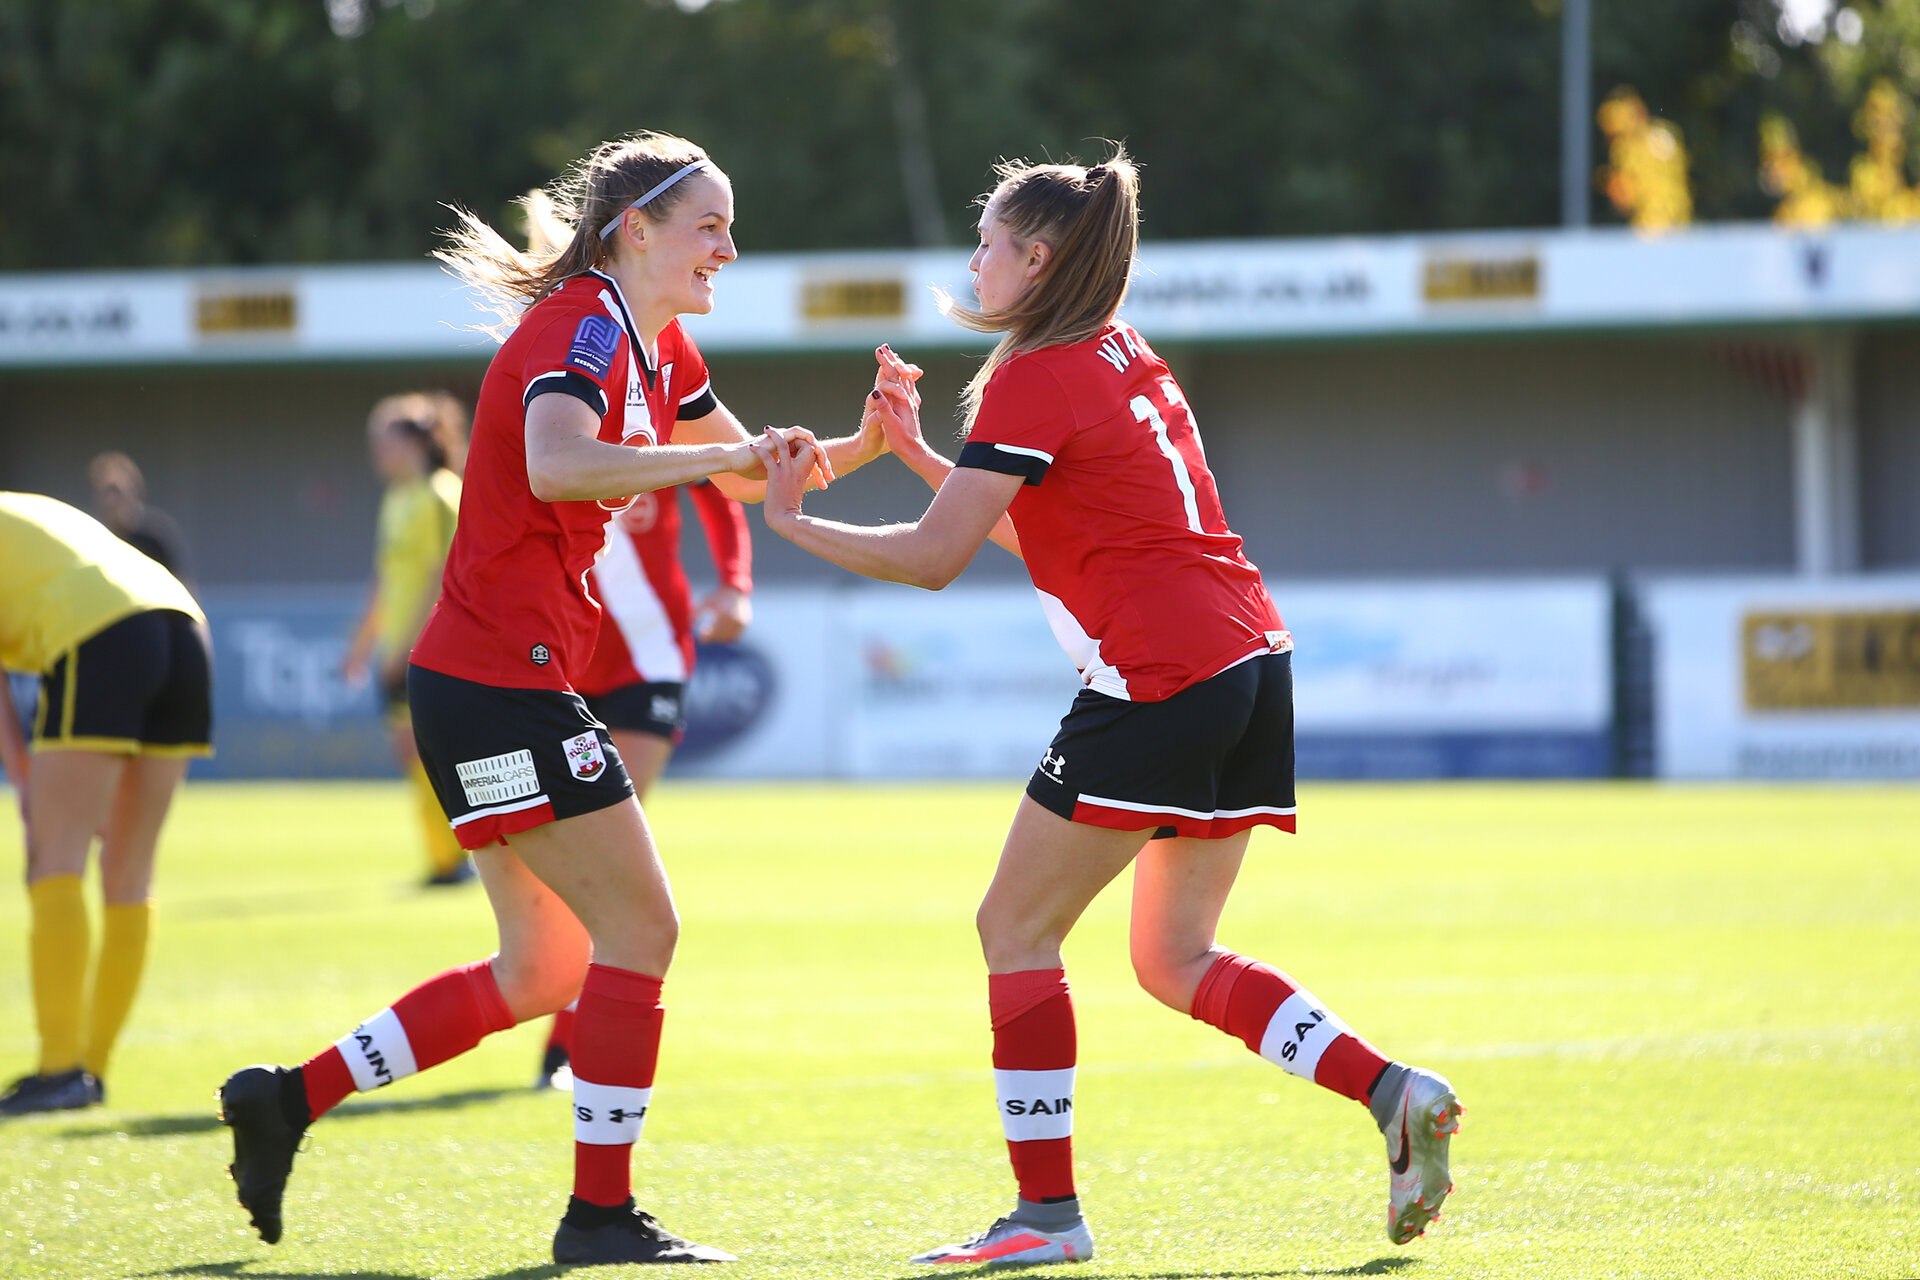 Southampton, ENGLAND - SEPTEMBER 27: Ella Pusey (L) congratulates Alisha Ware (R) on her goal of Southampton during the FAWNL match between Southampton Women and Buckland Athletic at Snows Stadium on September 27, 2020 in Southampton, United Kingdom (Photo by Isabelle Field/Southampton FC via Getty Images)